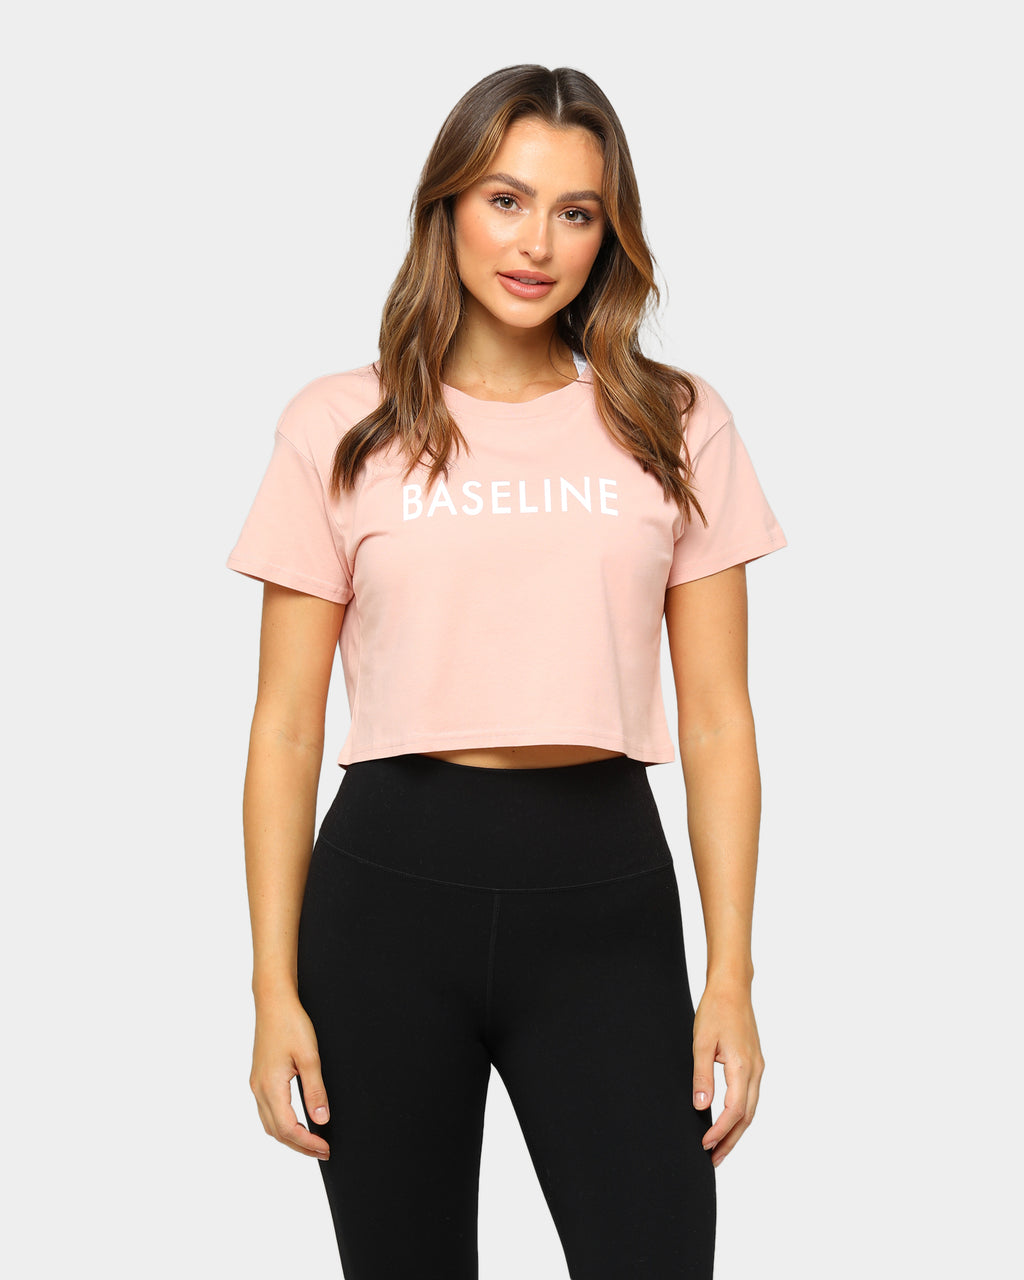 Baseline Everyday Crop Tee Pale Pink